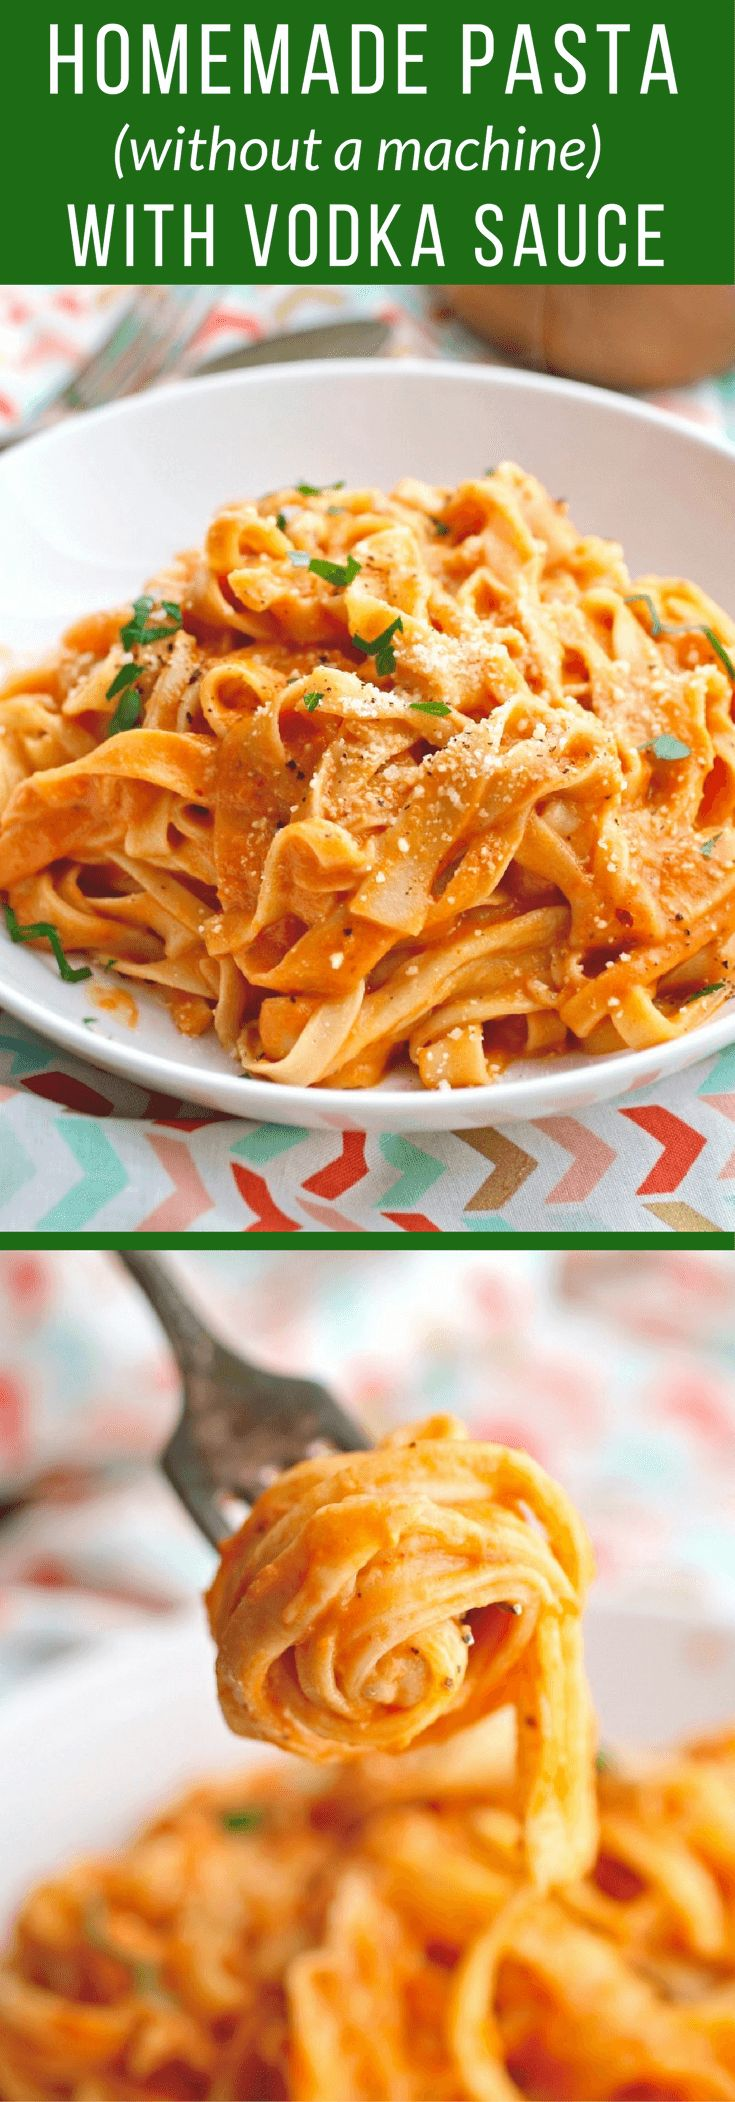 It's a treat to make Homemade Pasta (without a machine) with Vodka Sauce!